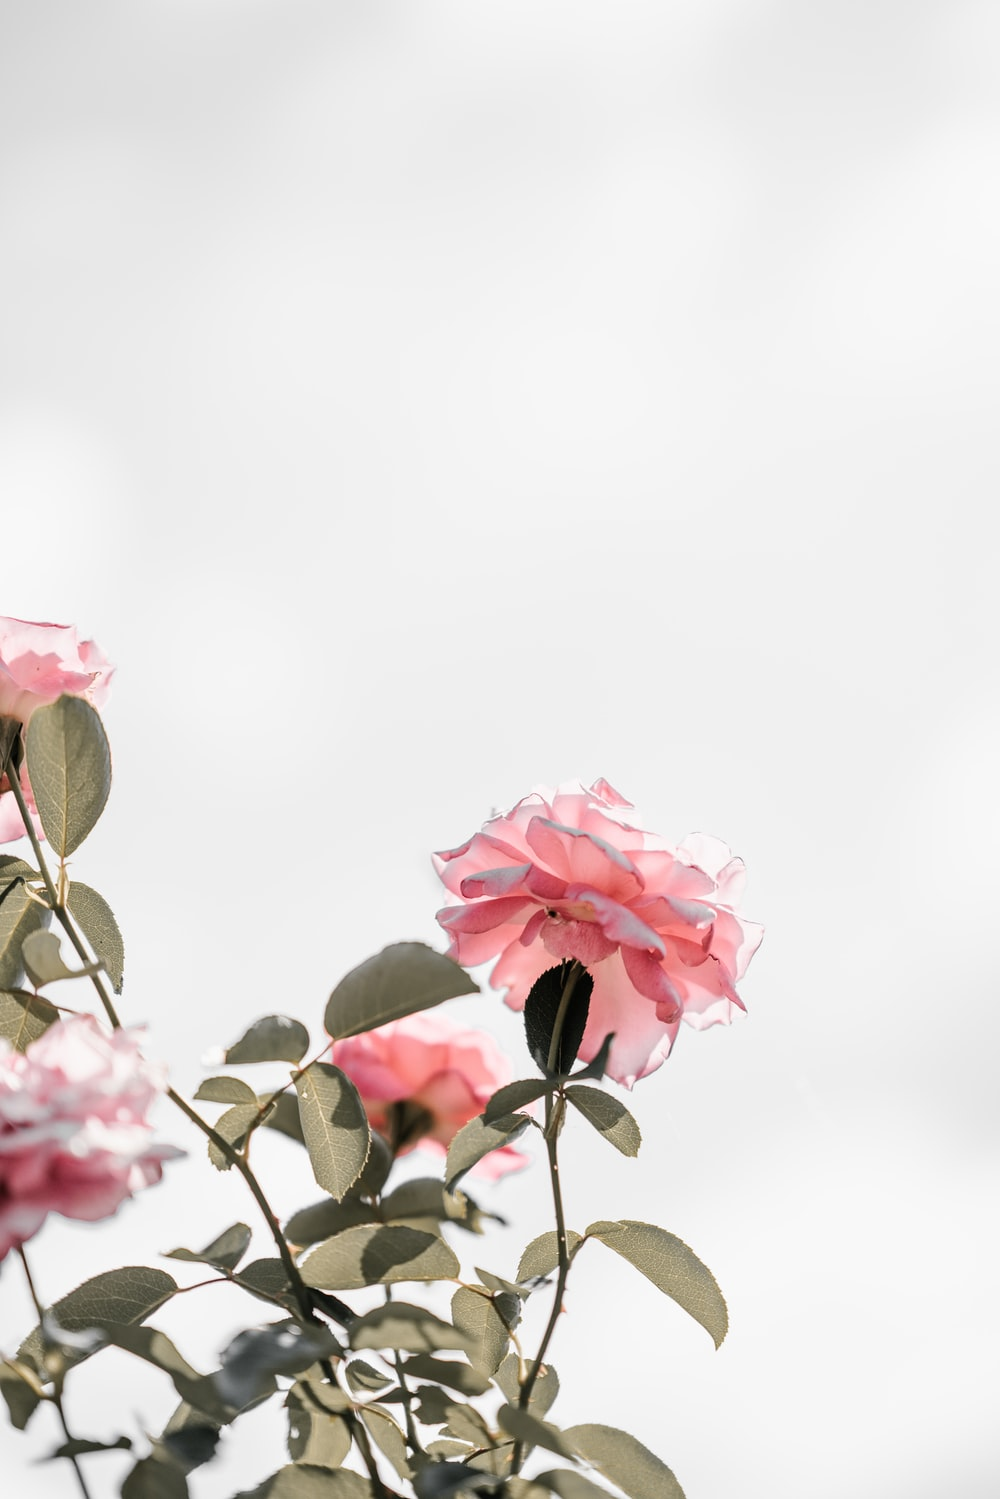 Pink flowers pictures hd download free images on unsplash pink petaled flowers mightylinksfo